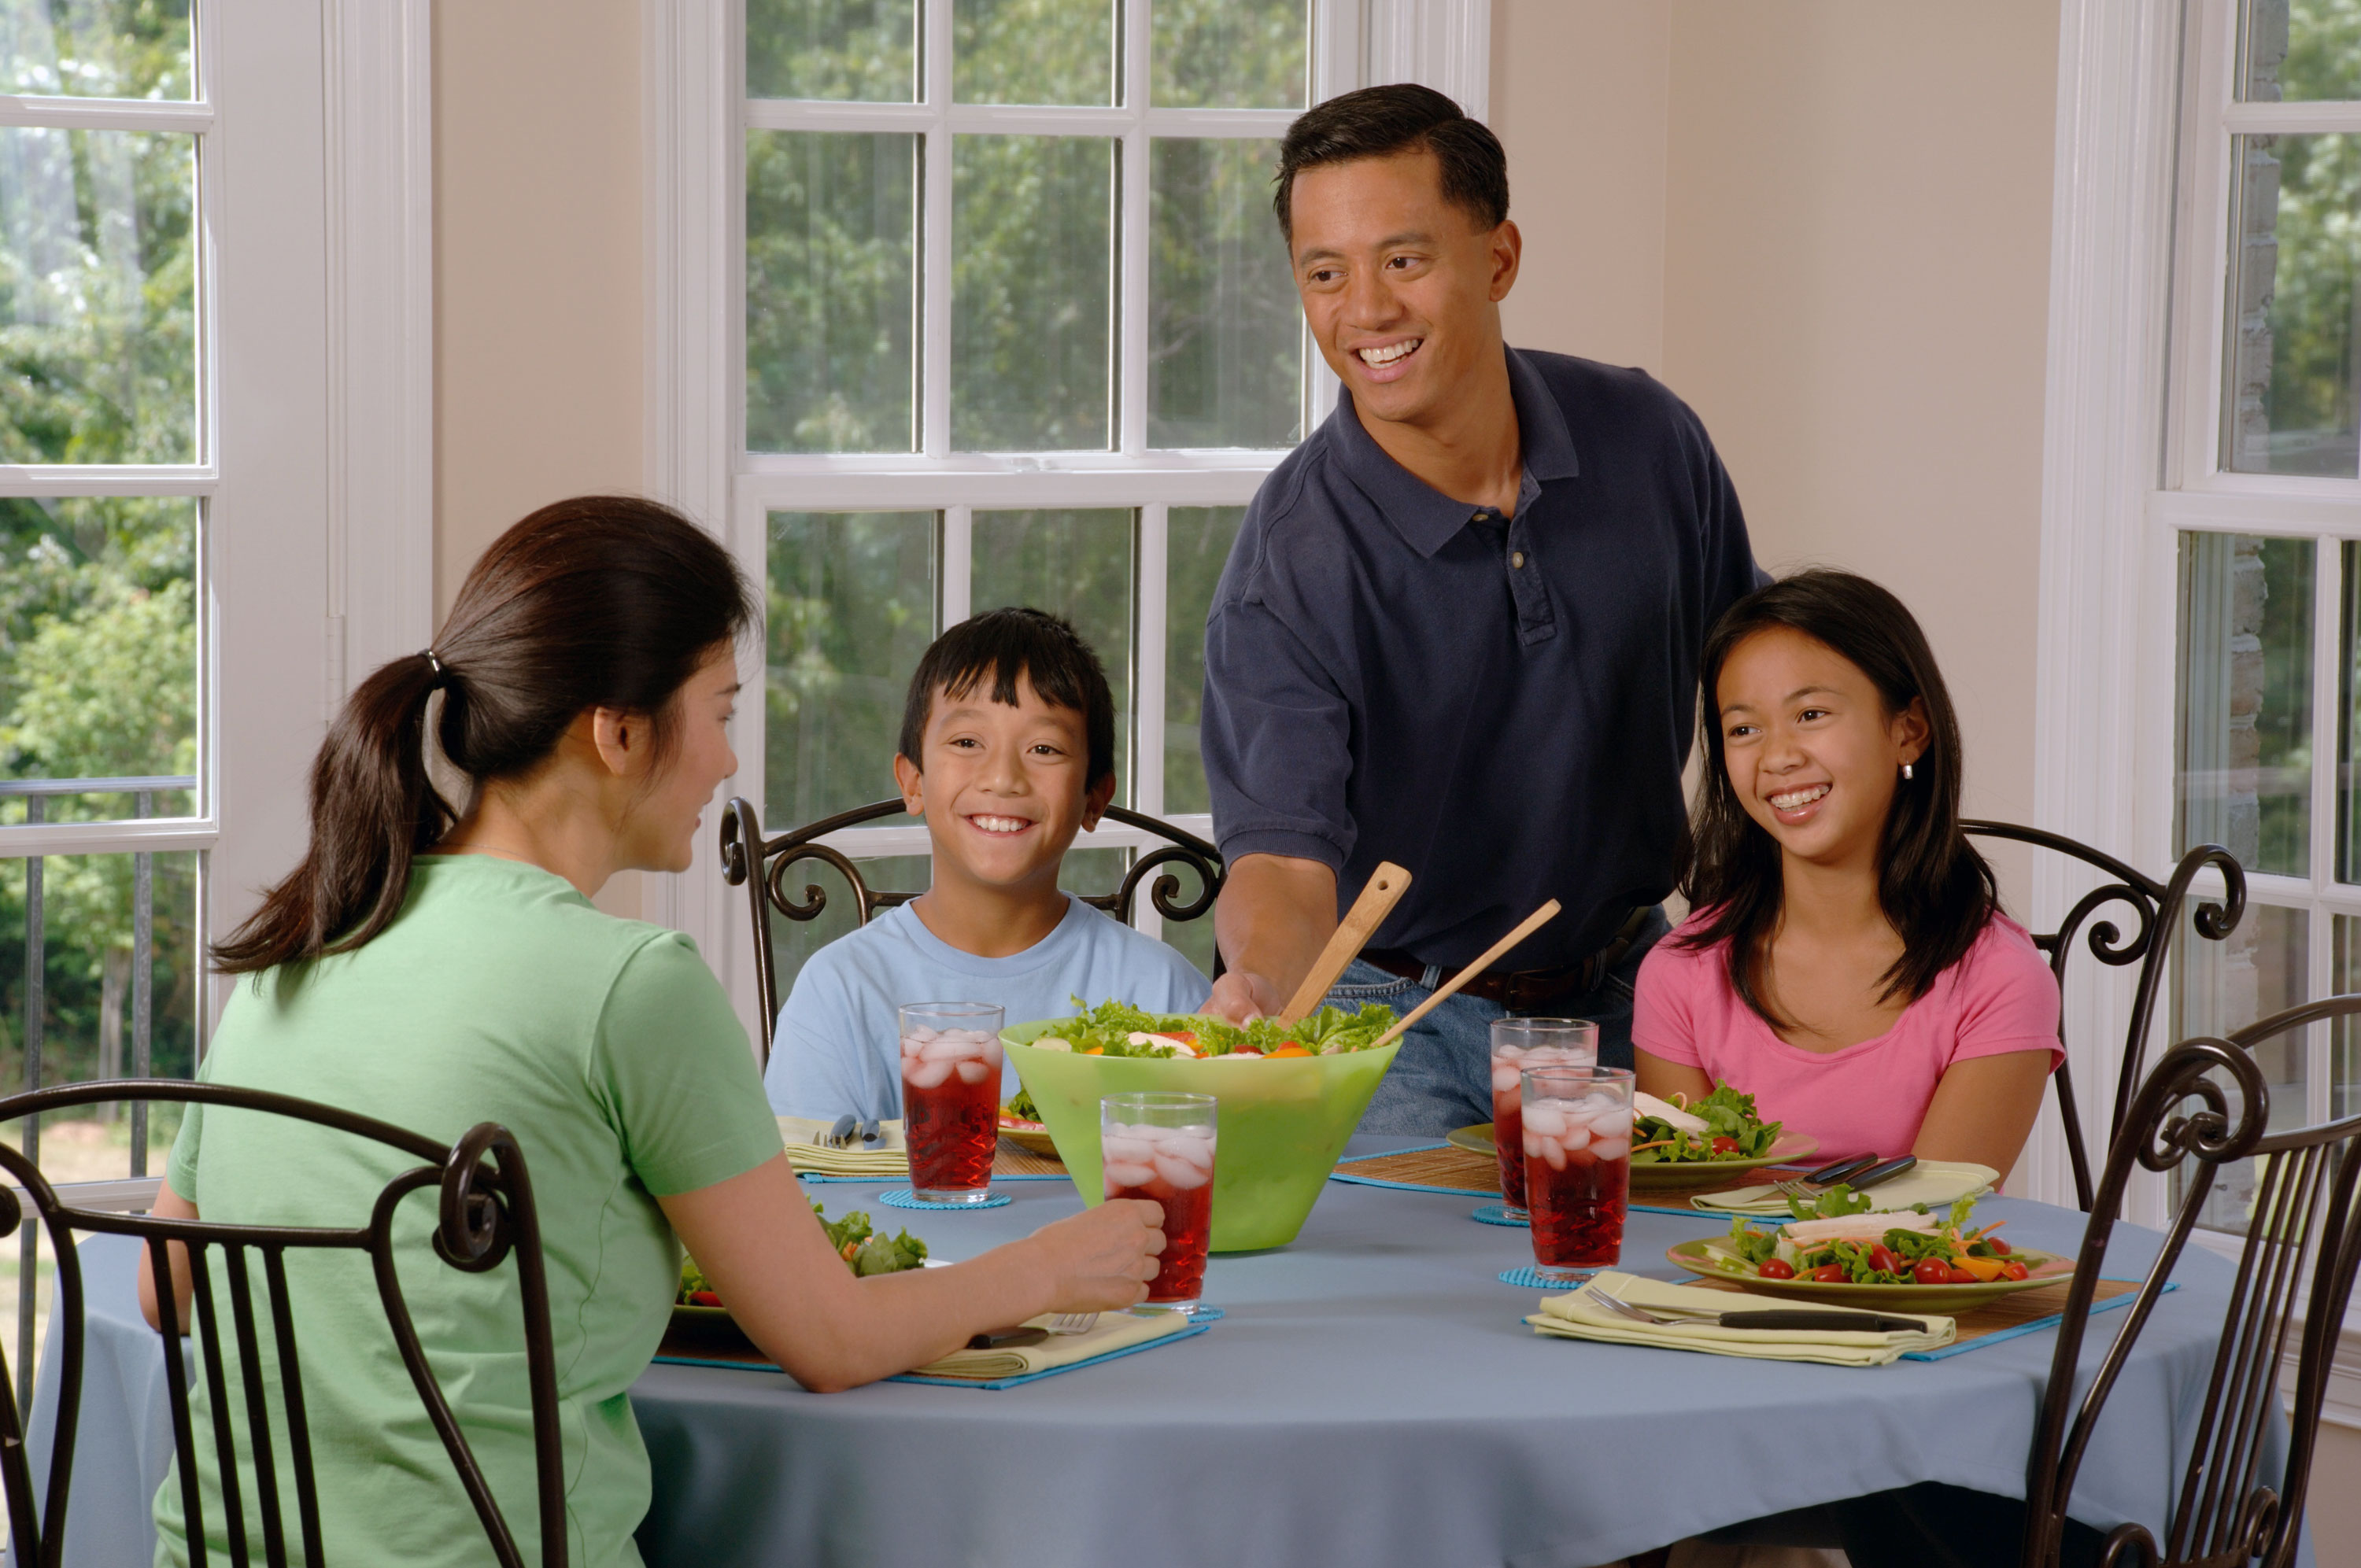 Asian Families Eating Asian Food Together